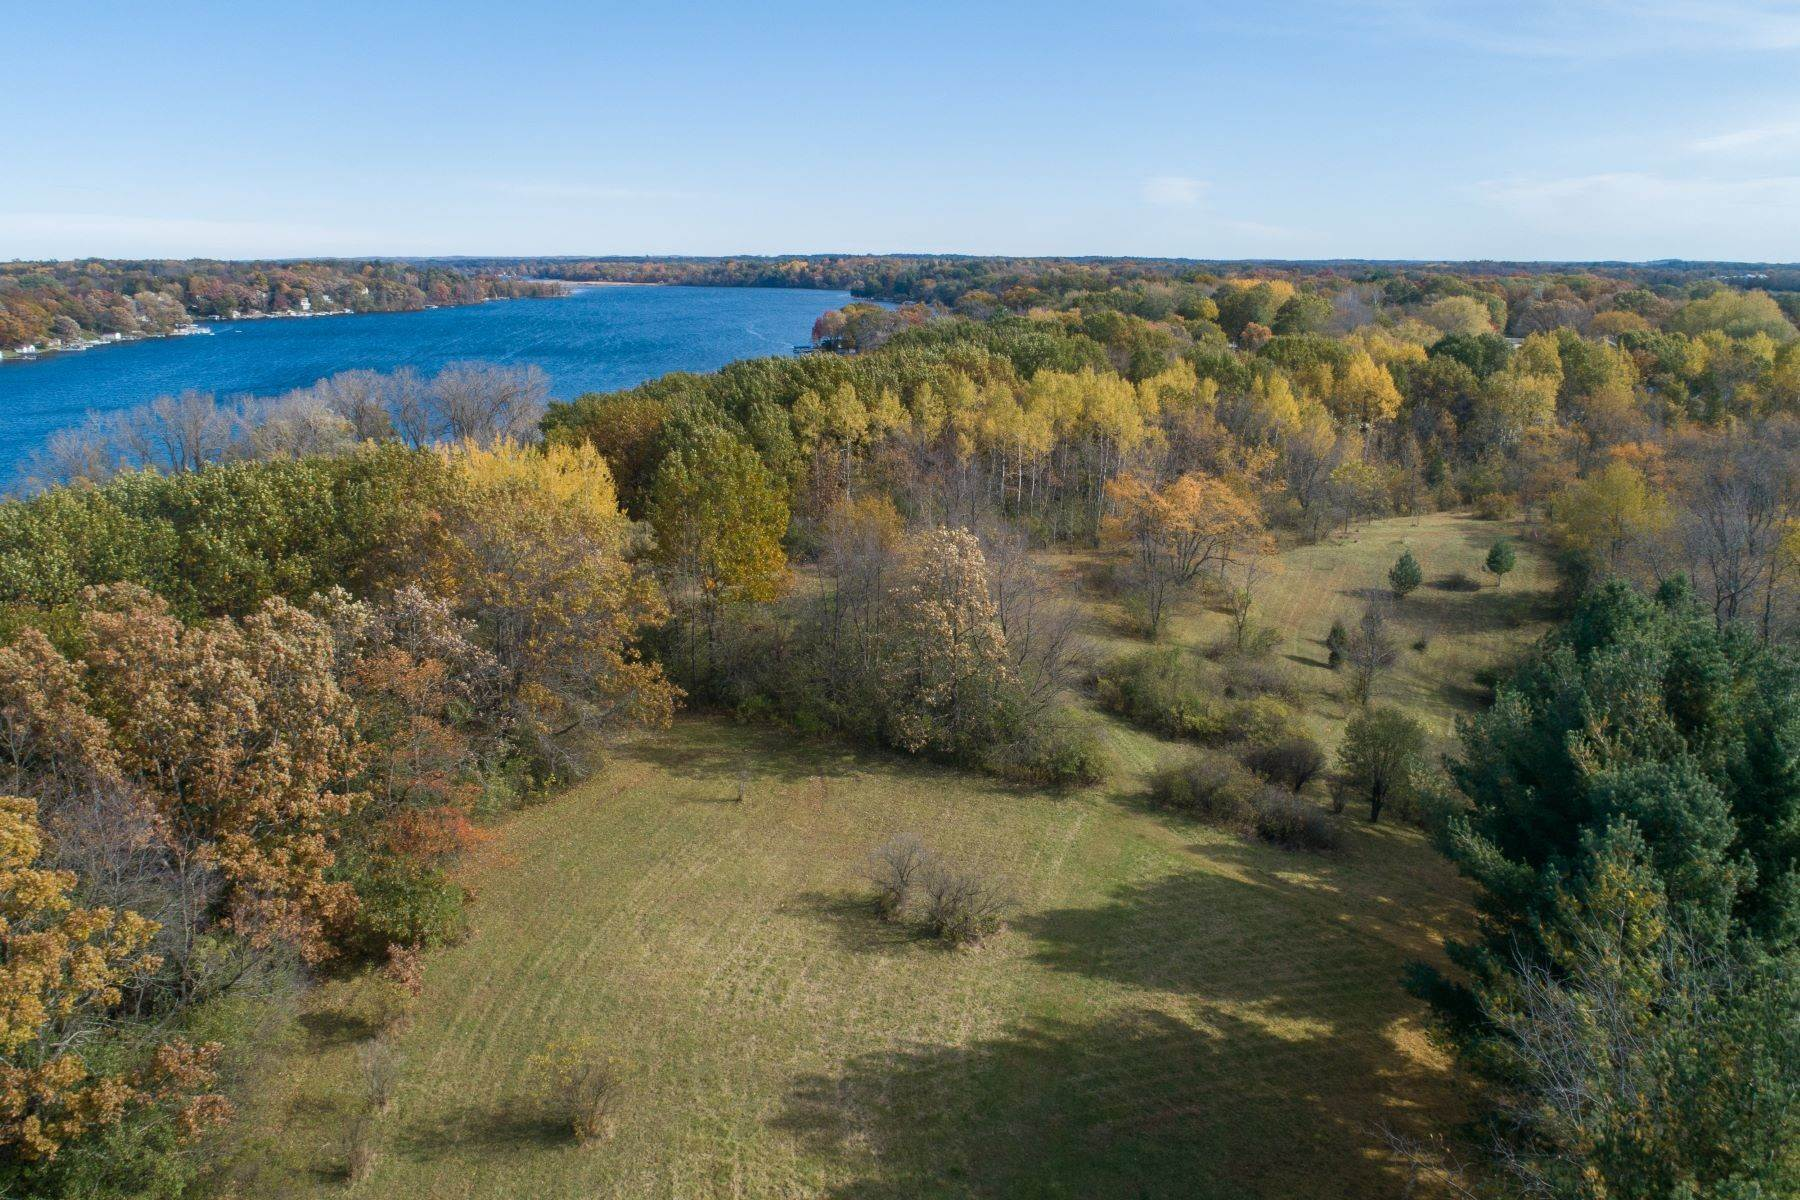 Property for Sale at Truly Special Parcel Of Land N8684 Stringers Bridge Road East Troy, Wisconsin 53120 United States